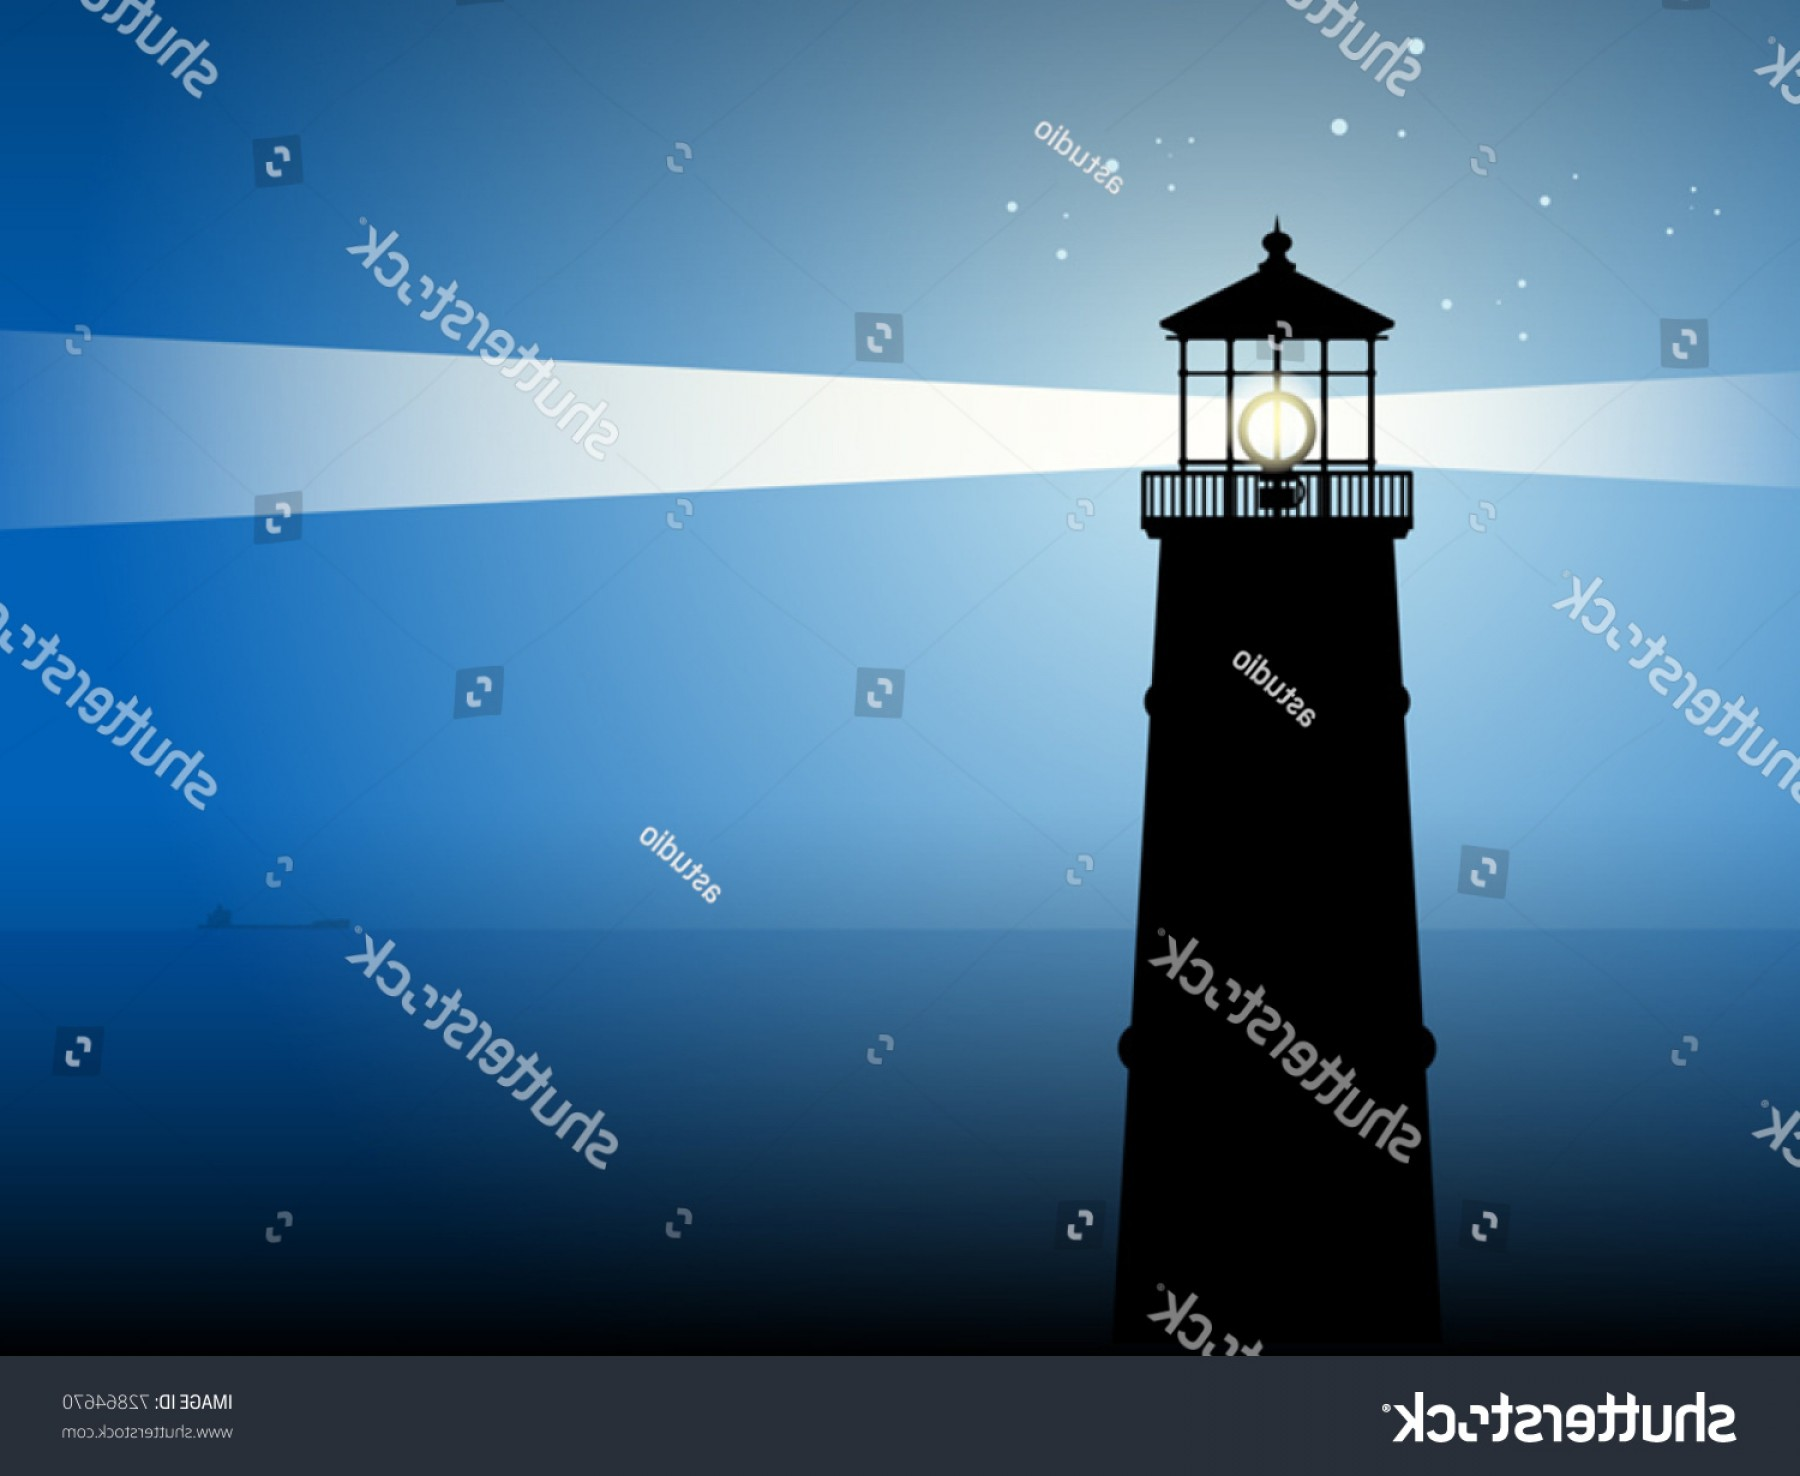 Lighthouse Beacon Silhouette Vector: Lighthouse Silhouette Night Vector Illustration